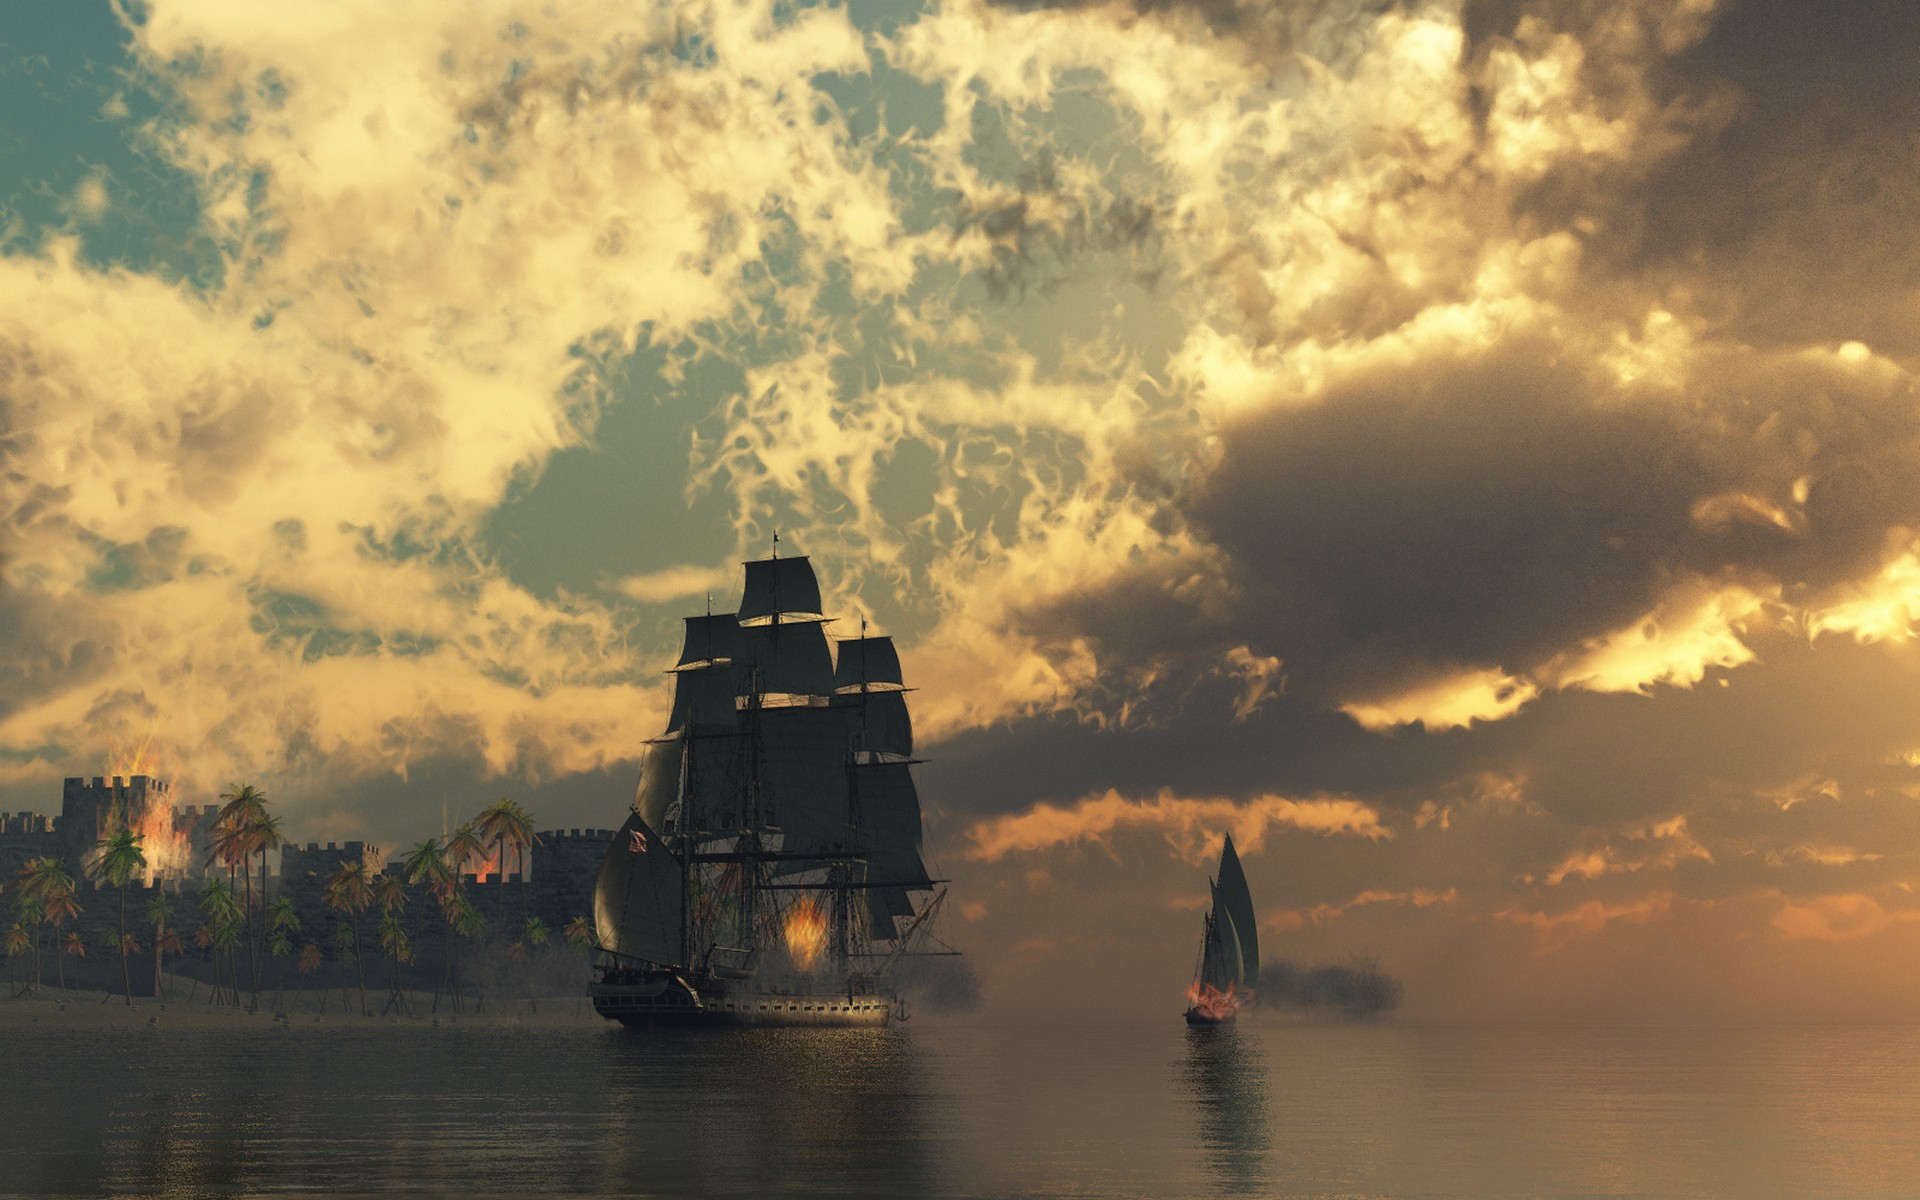 Fire ships pirates sail ship sails wallpaper background 1920x1200